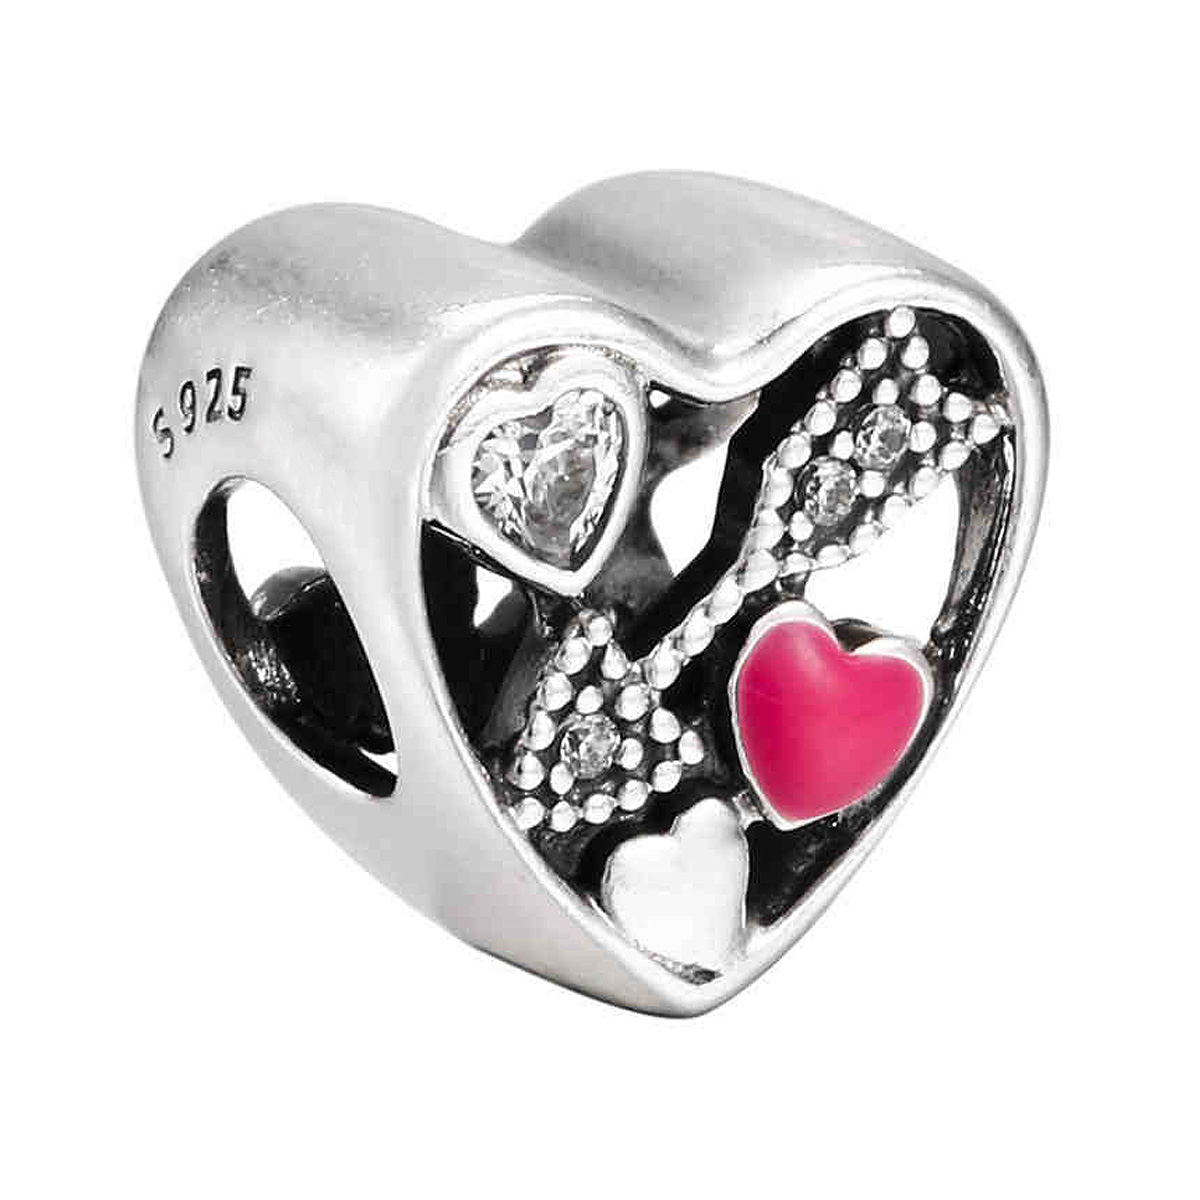 New 925 Sterling Silver Bead Charm Openwork Struck By Love With Crystal Cupids Arrow Beads Fit Pandora Bracelet Diy Jewelry